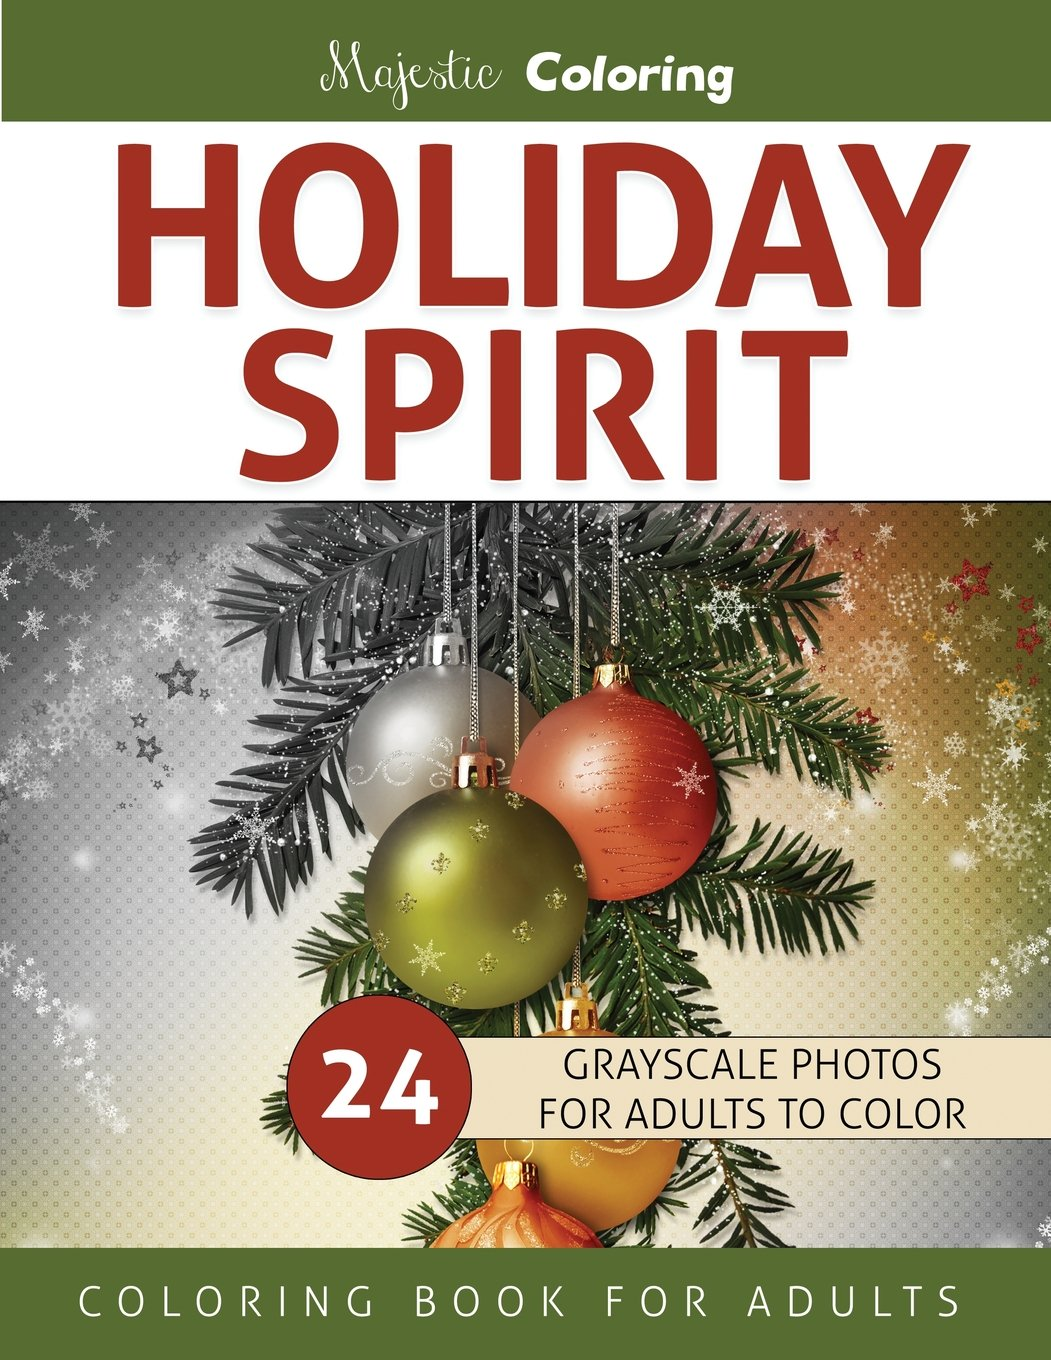 Amazon.com: Holiday Spirit: Grayscale Coloring Book for ...